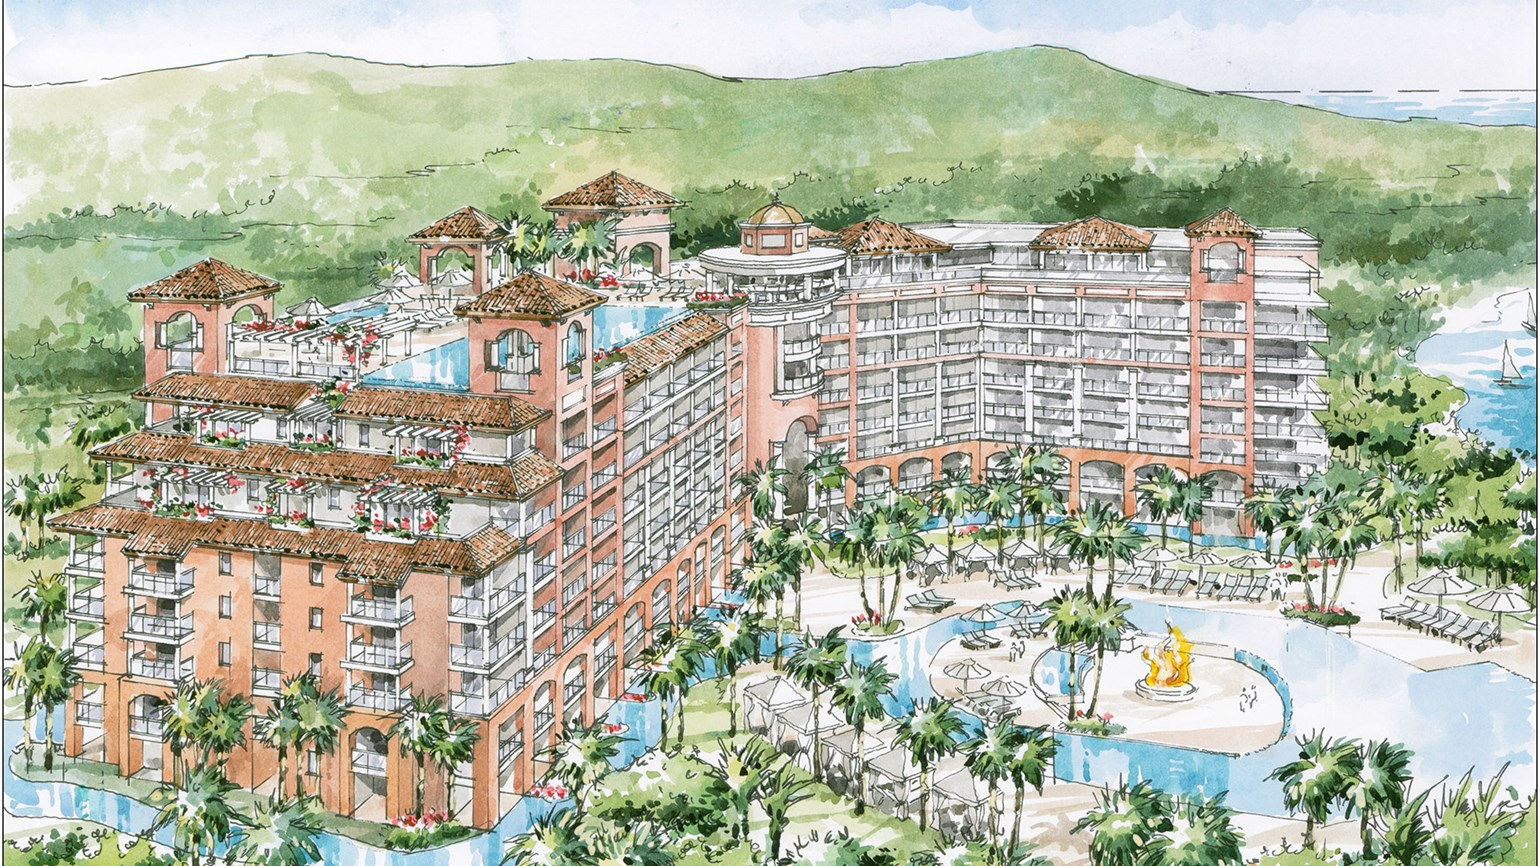 Sandals reveals more info about LaSource resort in St. Lucia